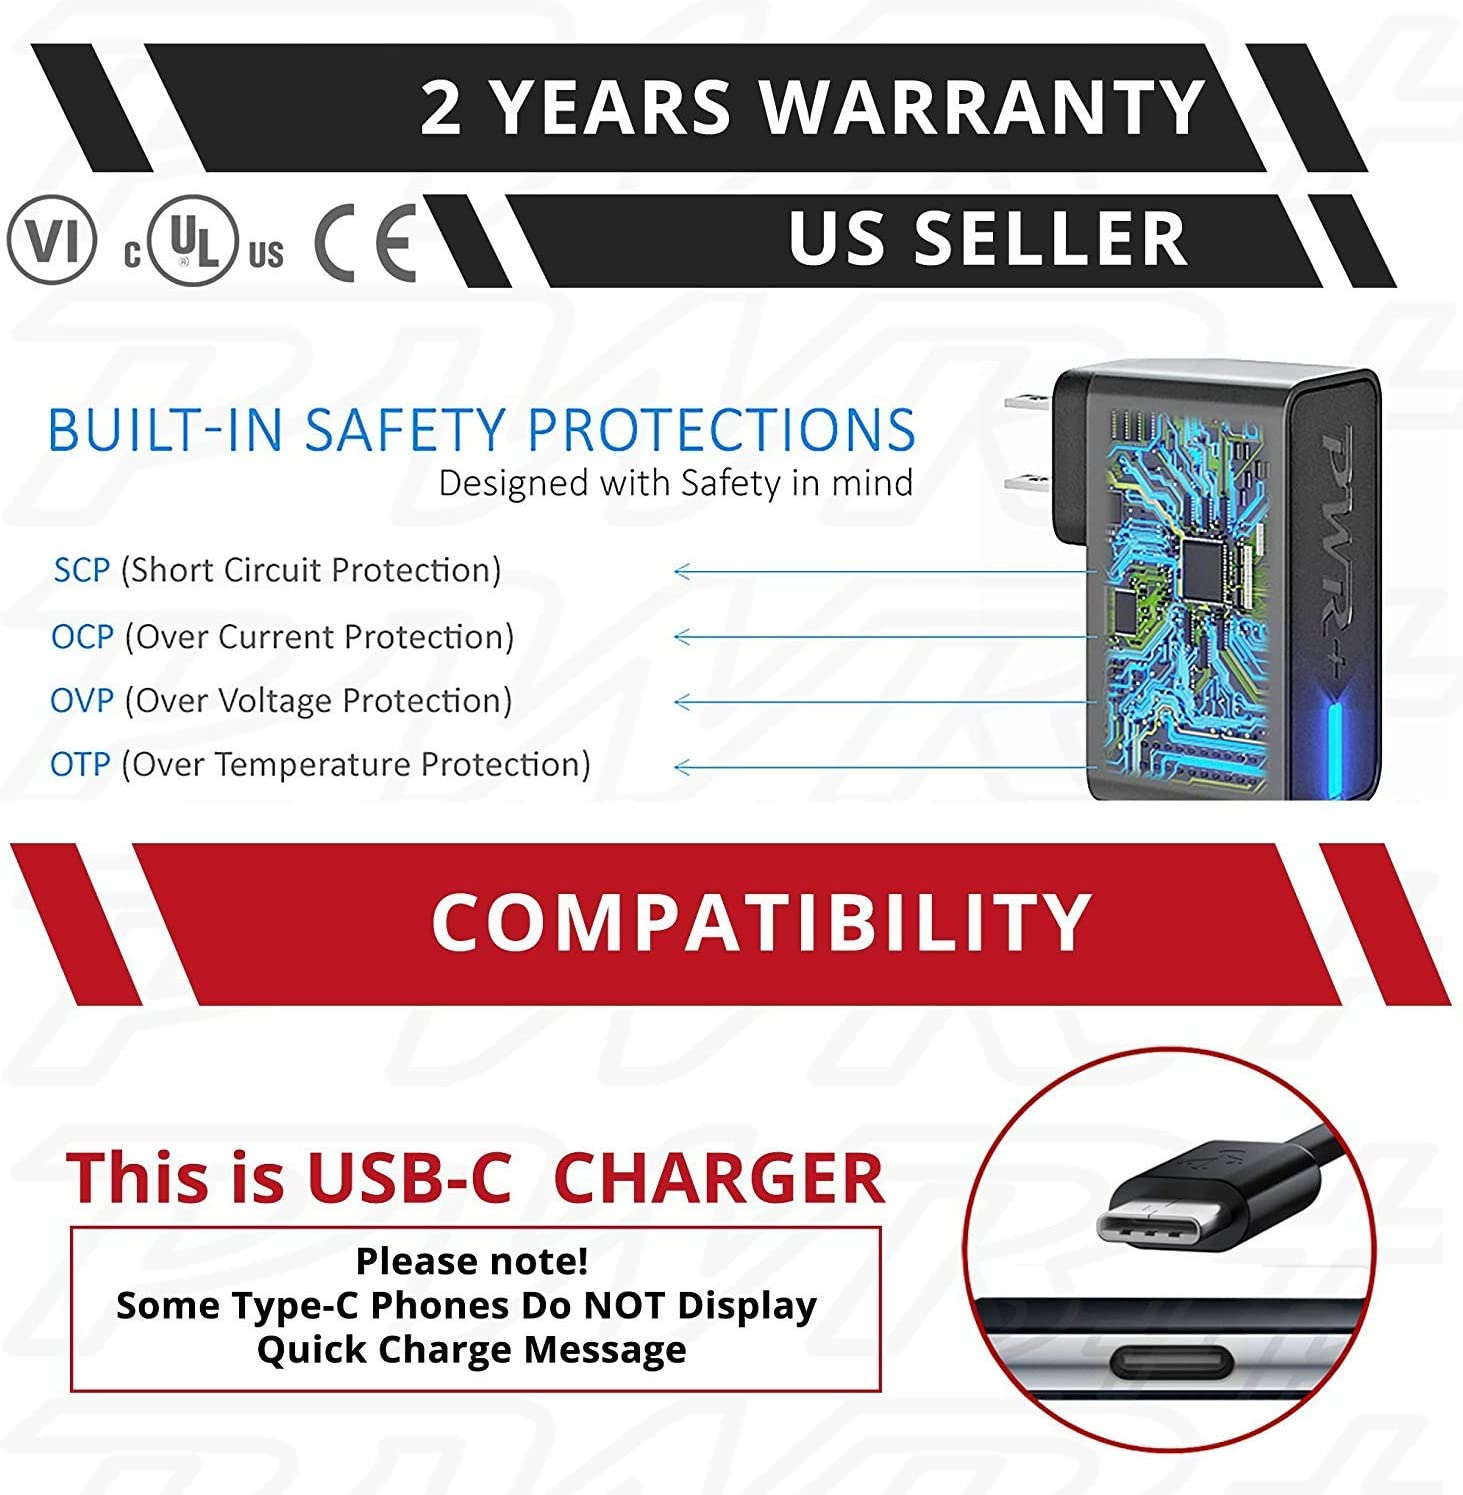 Pwr USB-C Phone Tablet Fast Charger USA UL Listed 2y Warranty 24W Extra Long Cord Type-C Power Adapter for LG Samsung Galaxy iPad Pro Razer ZTE HTC Huawei ASUS Motorola Moto Sony Xperia Android